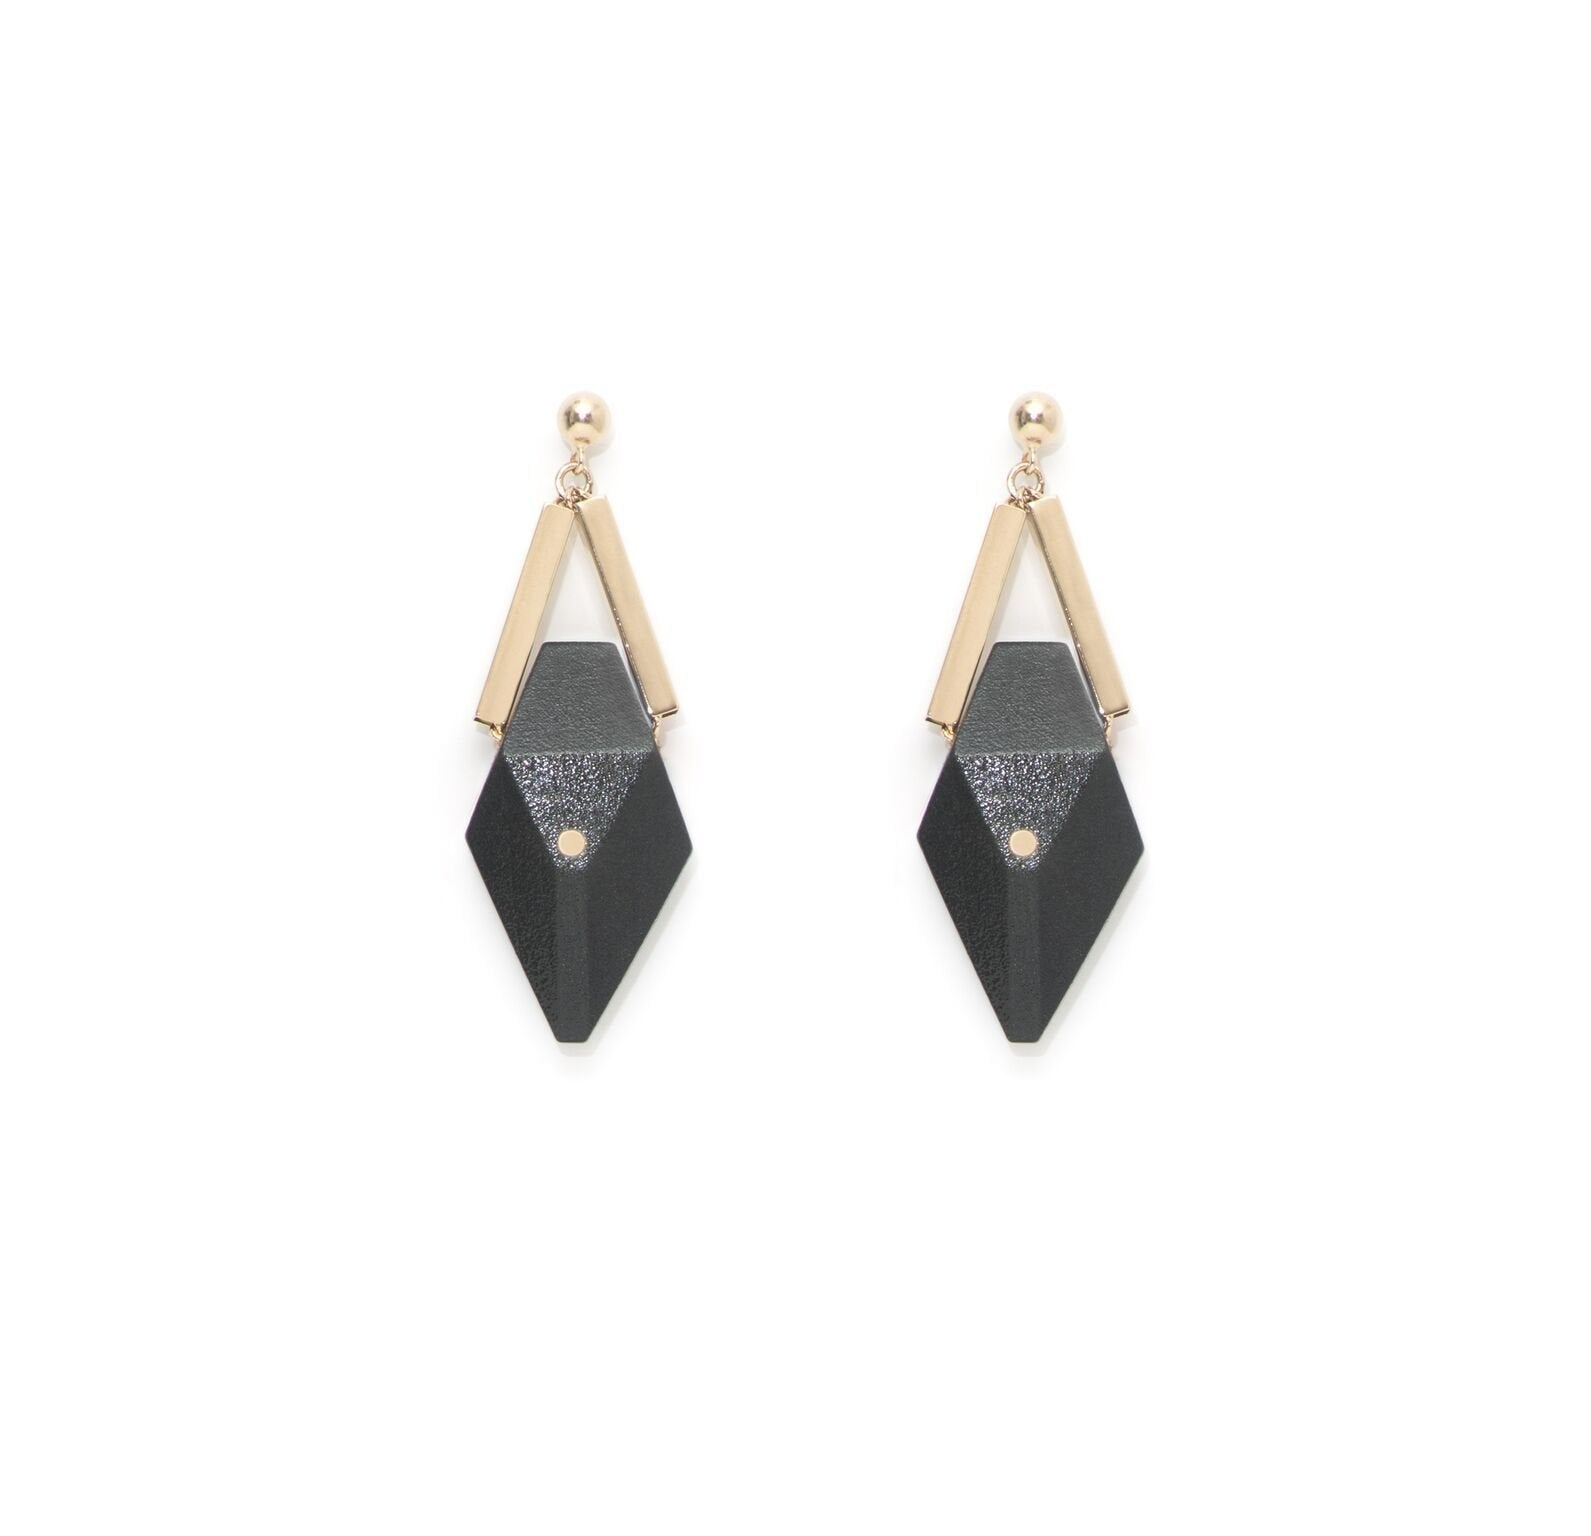 Pan Black Champagne Earrings - The Clothing LoungeSalomé Charly